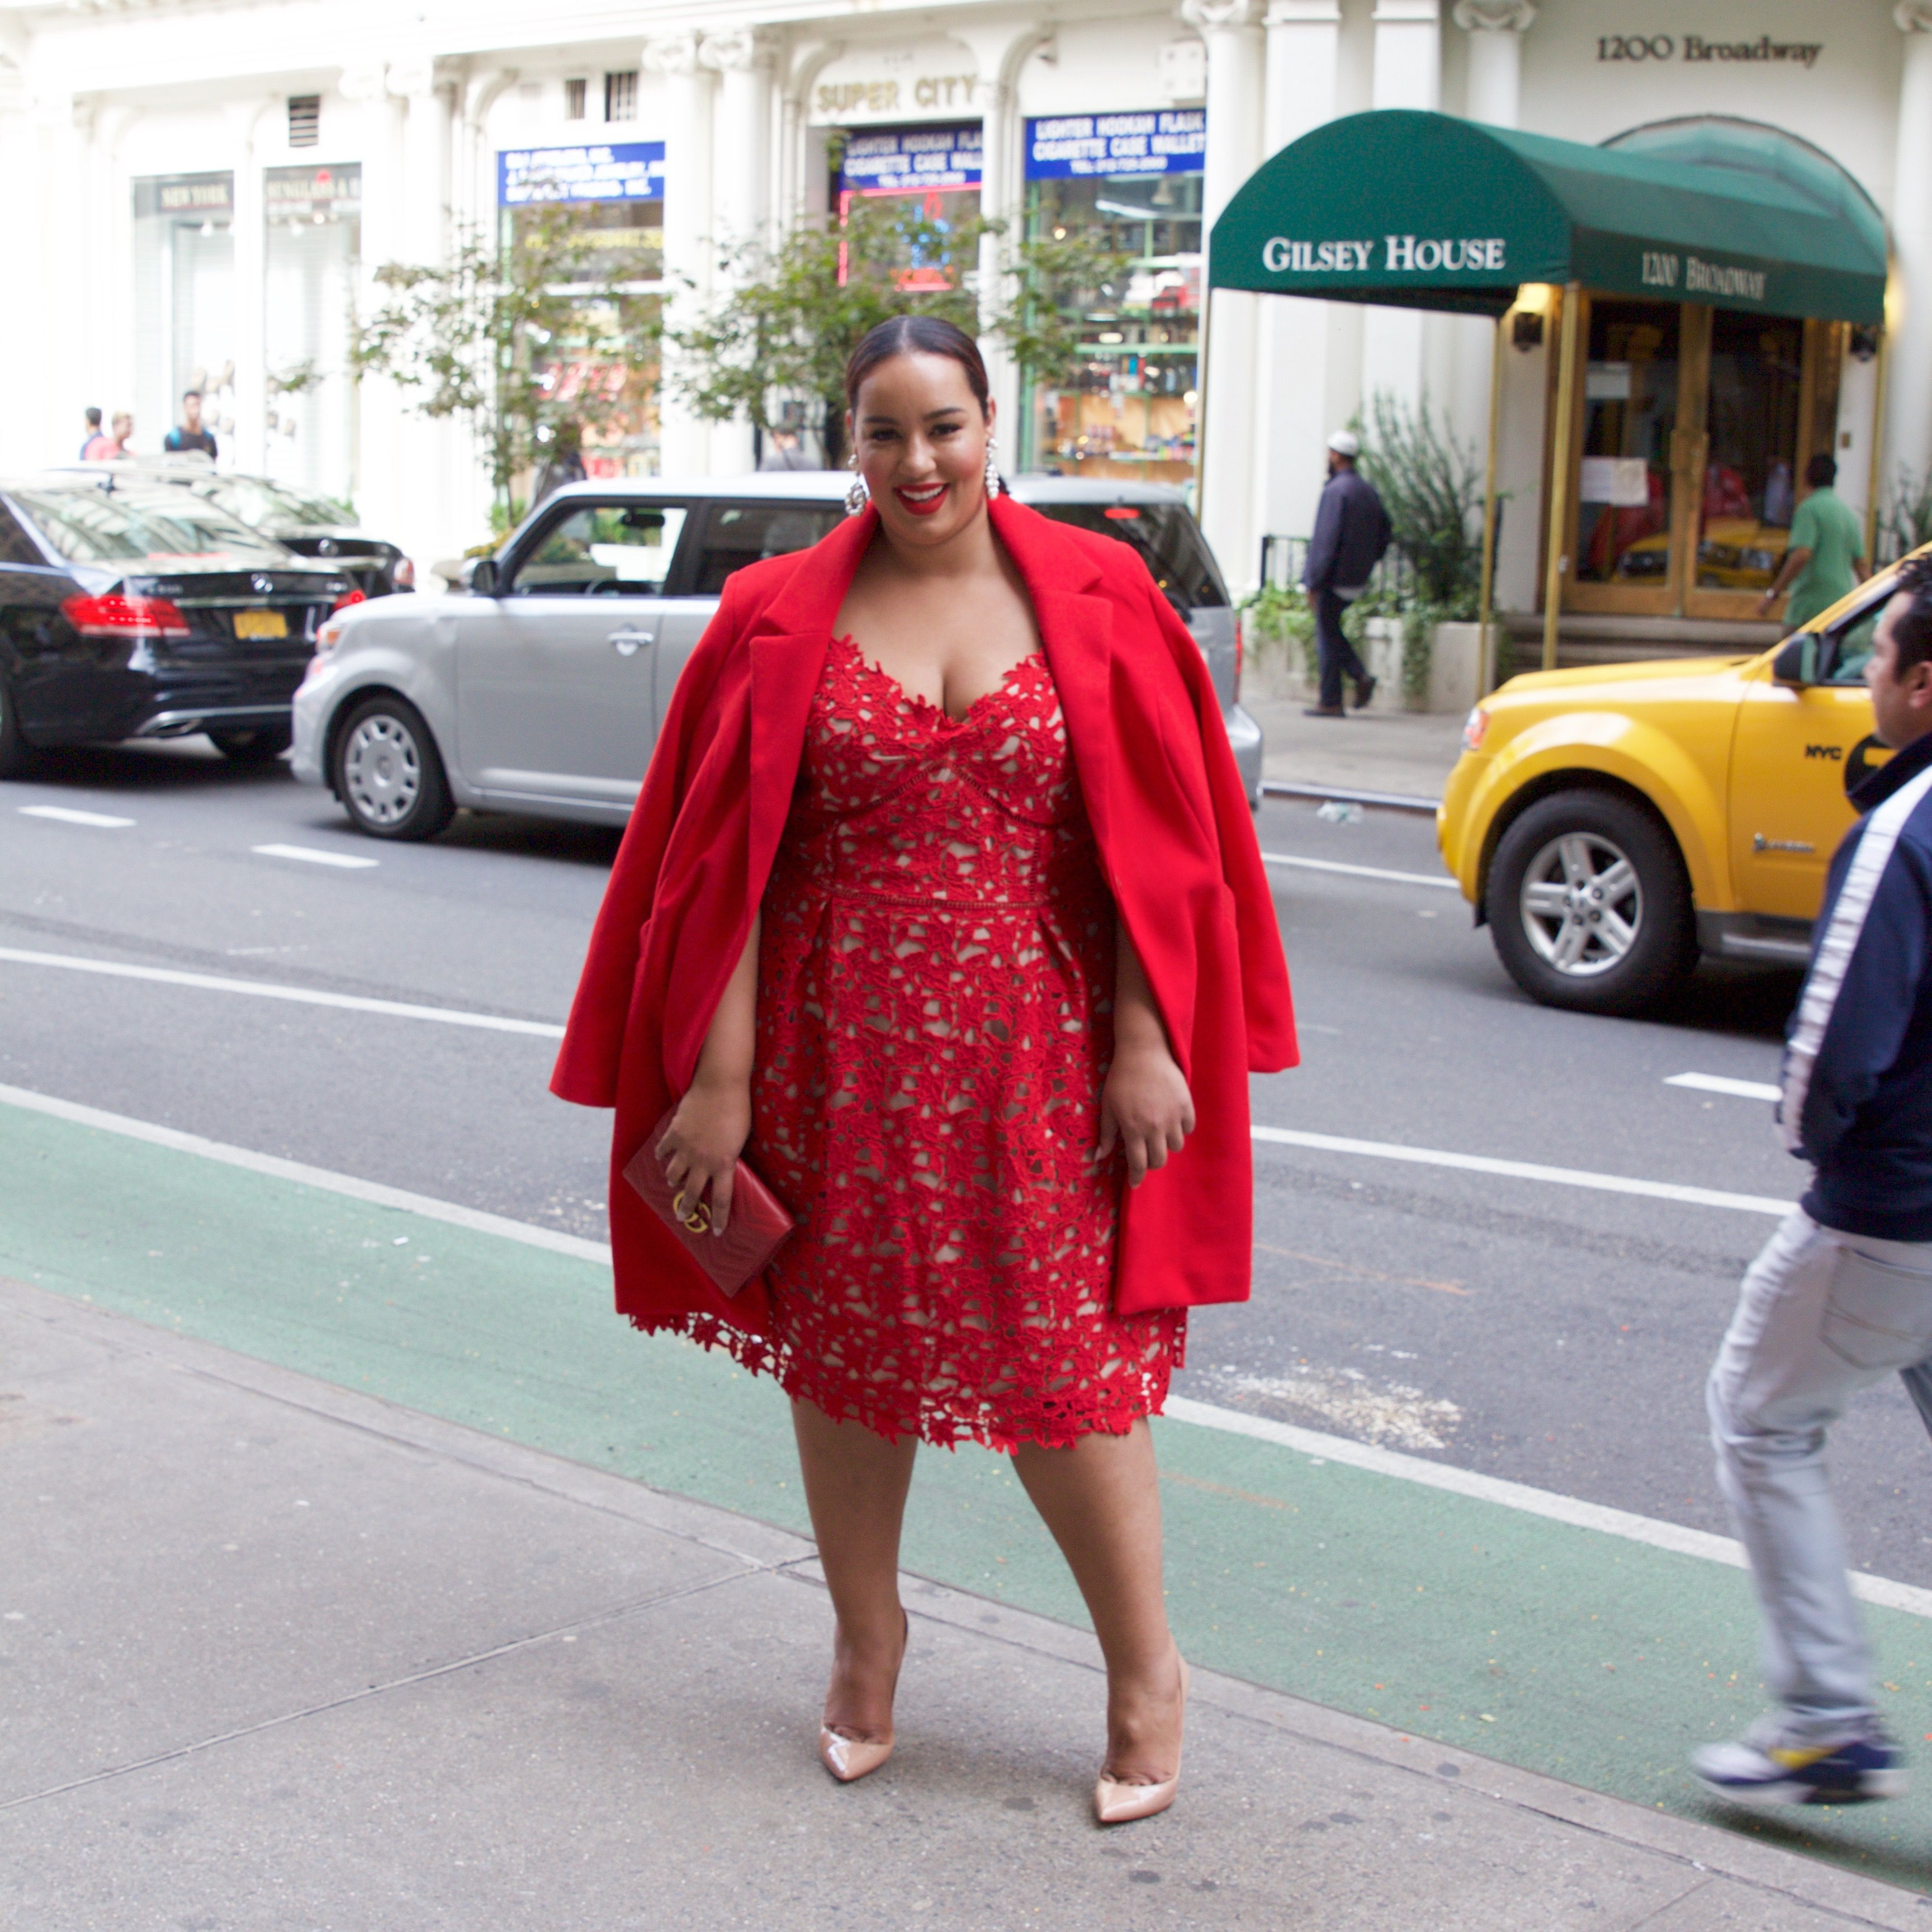 Woman in red dress and red coat